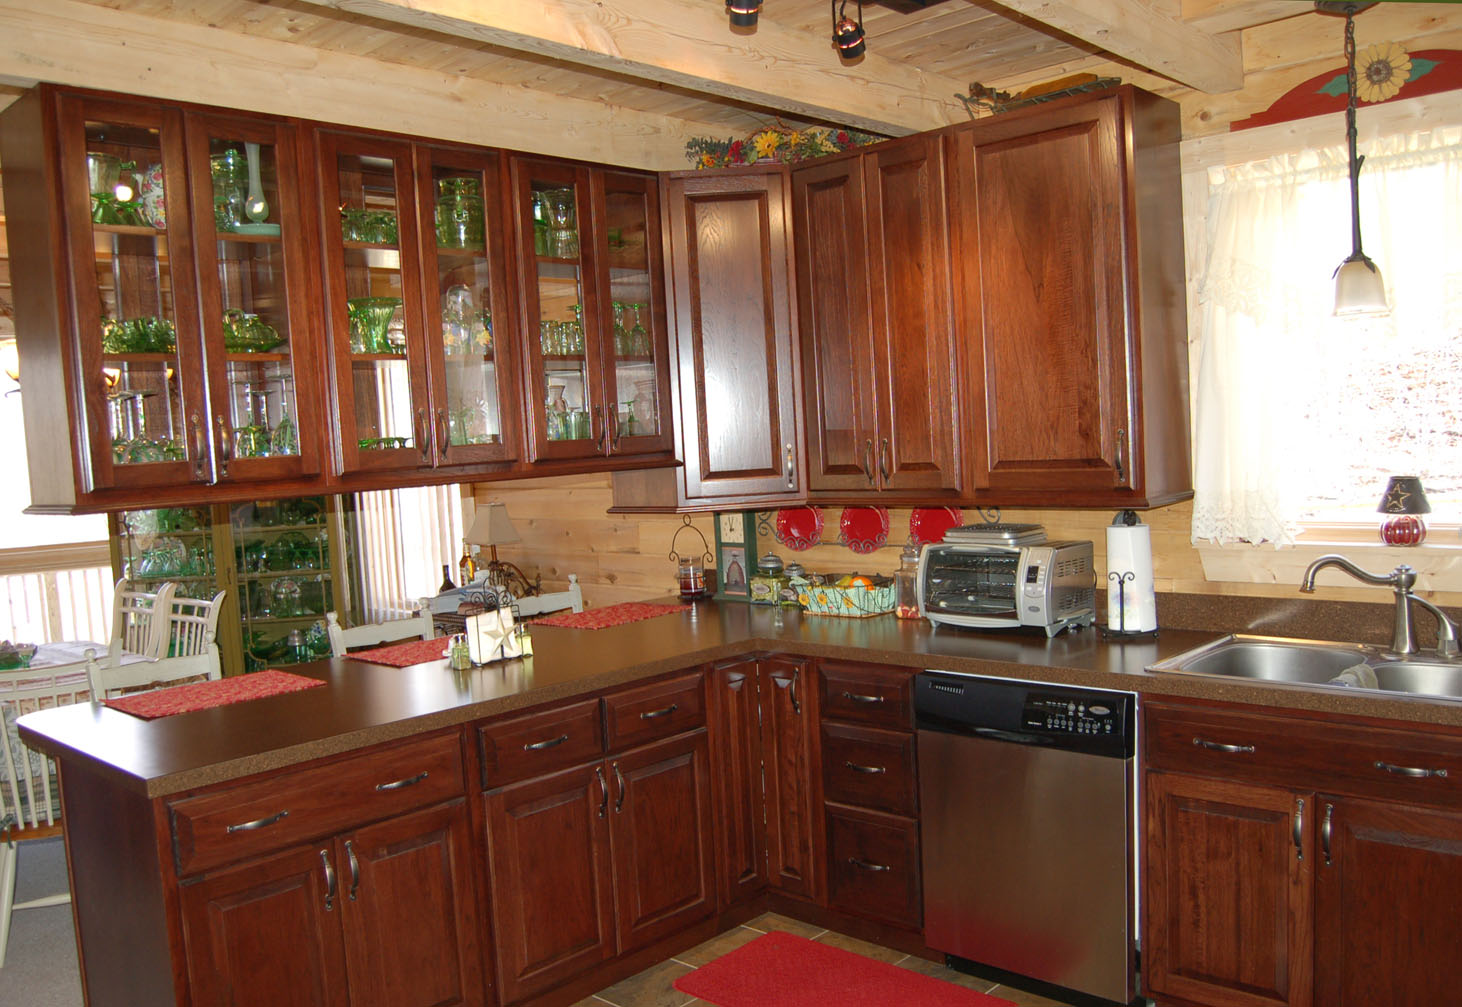 LakeArthur Kitchen.jpg